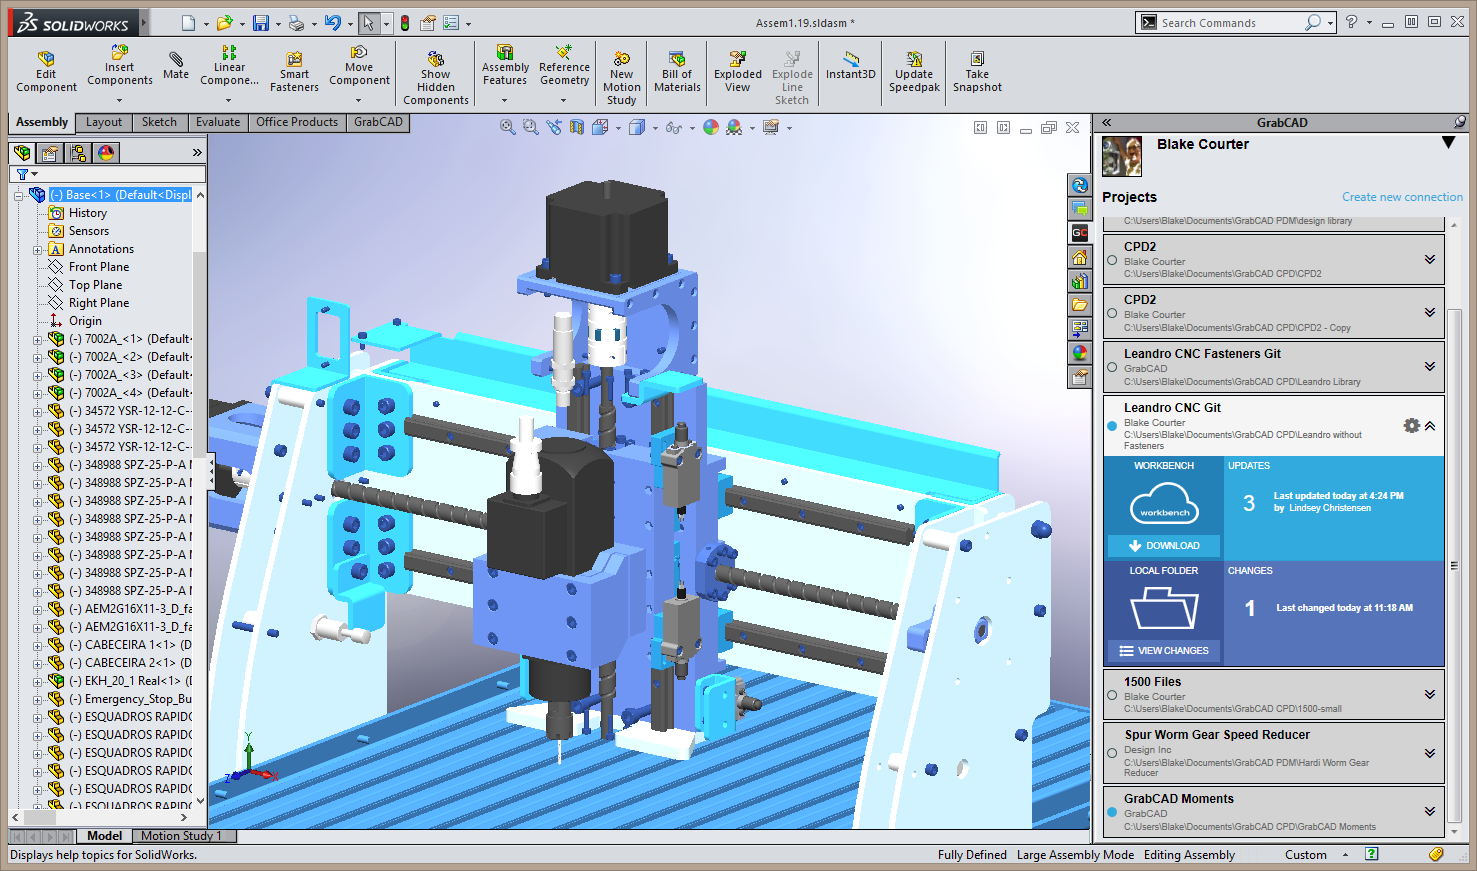 Grabcad workbench file management features out of beta Cad system